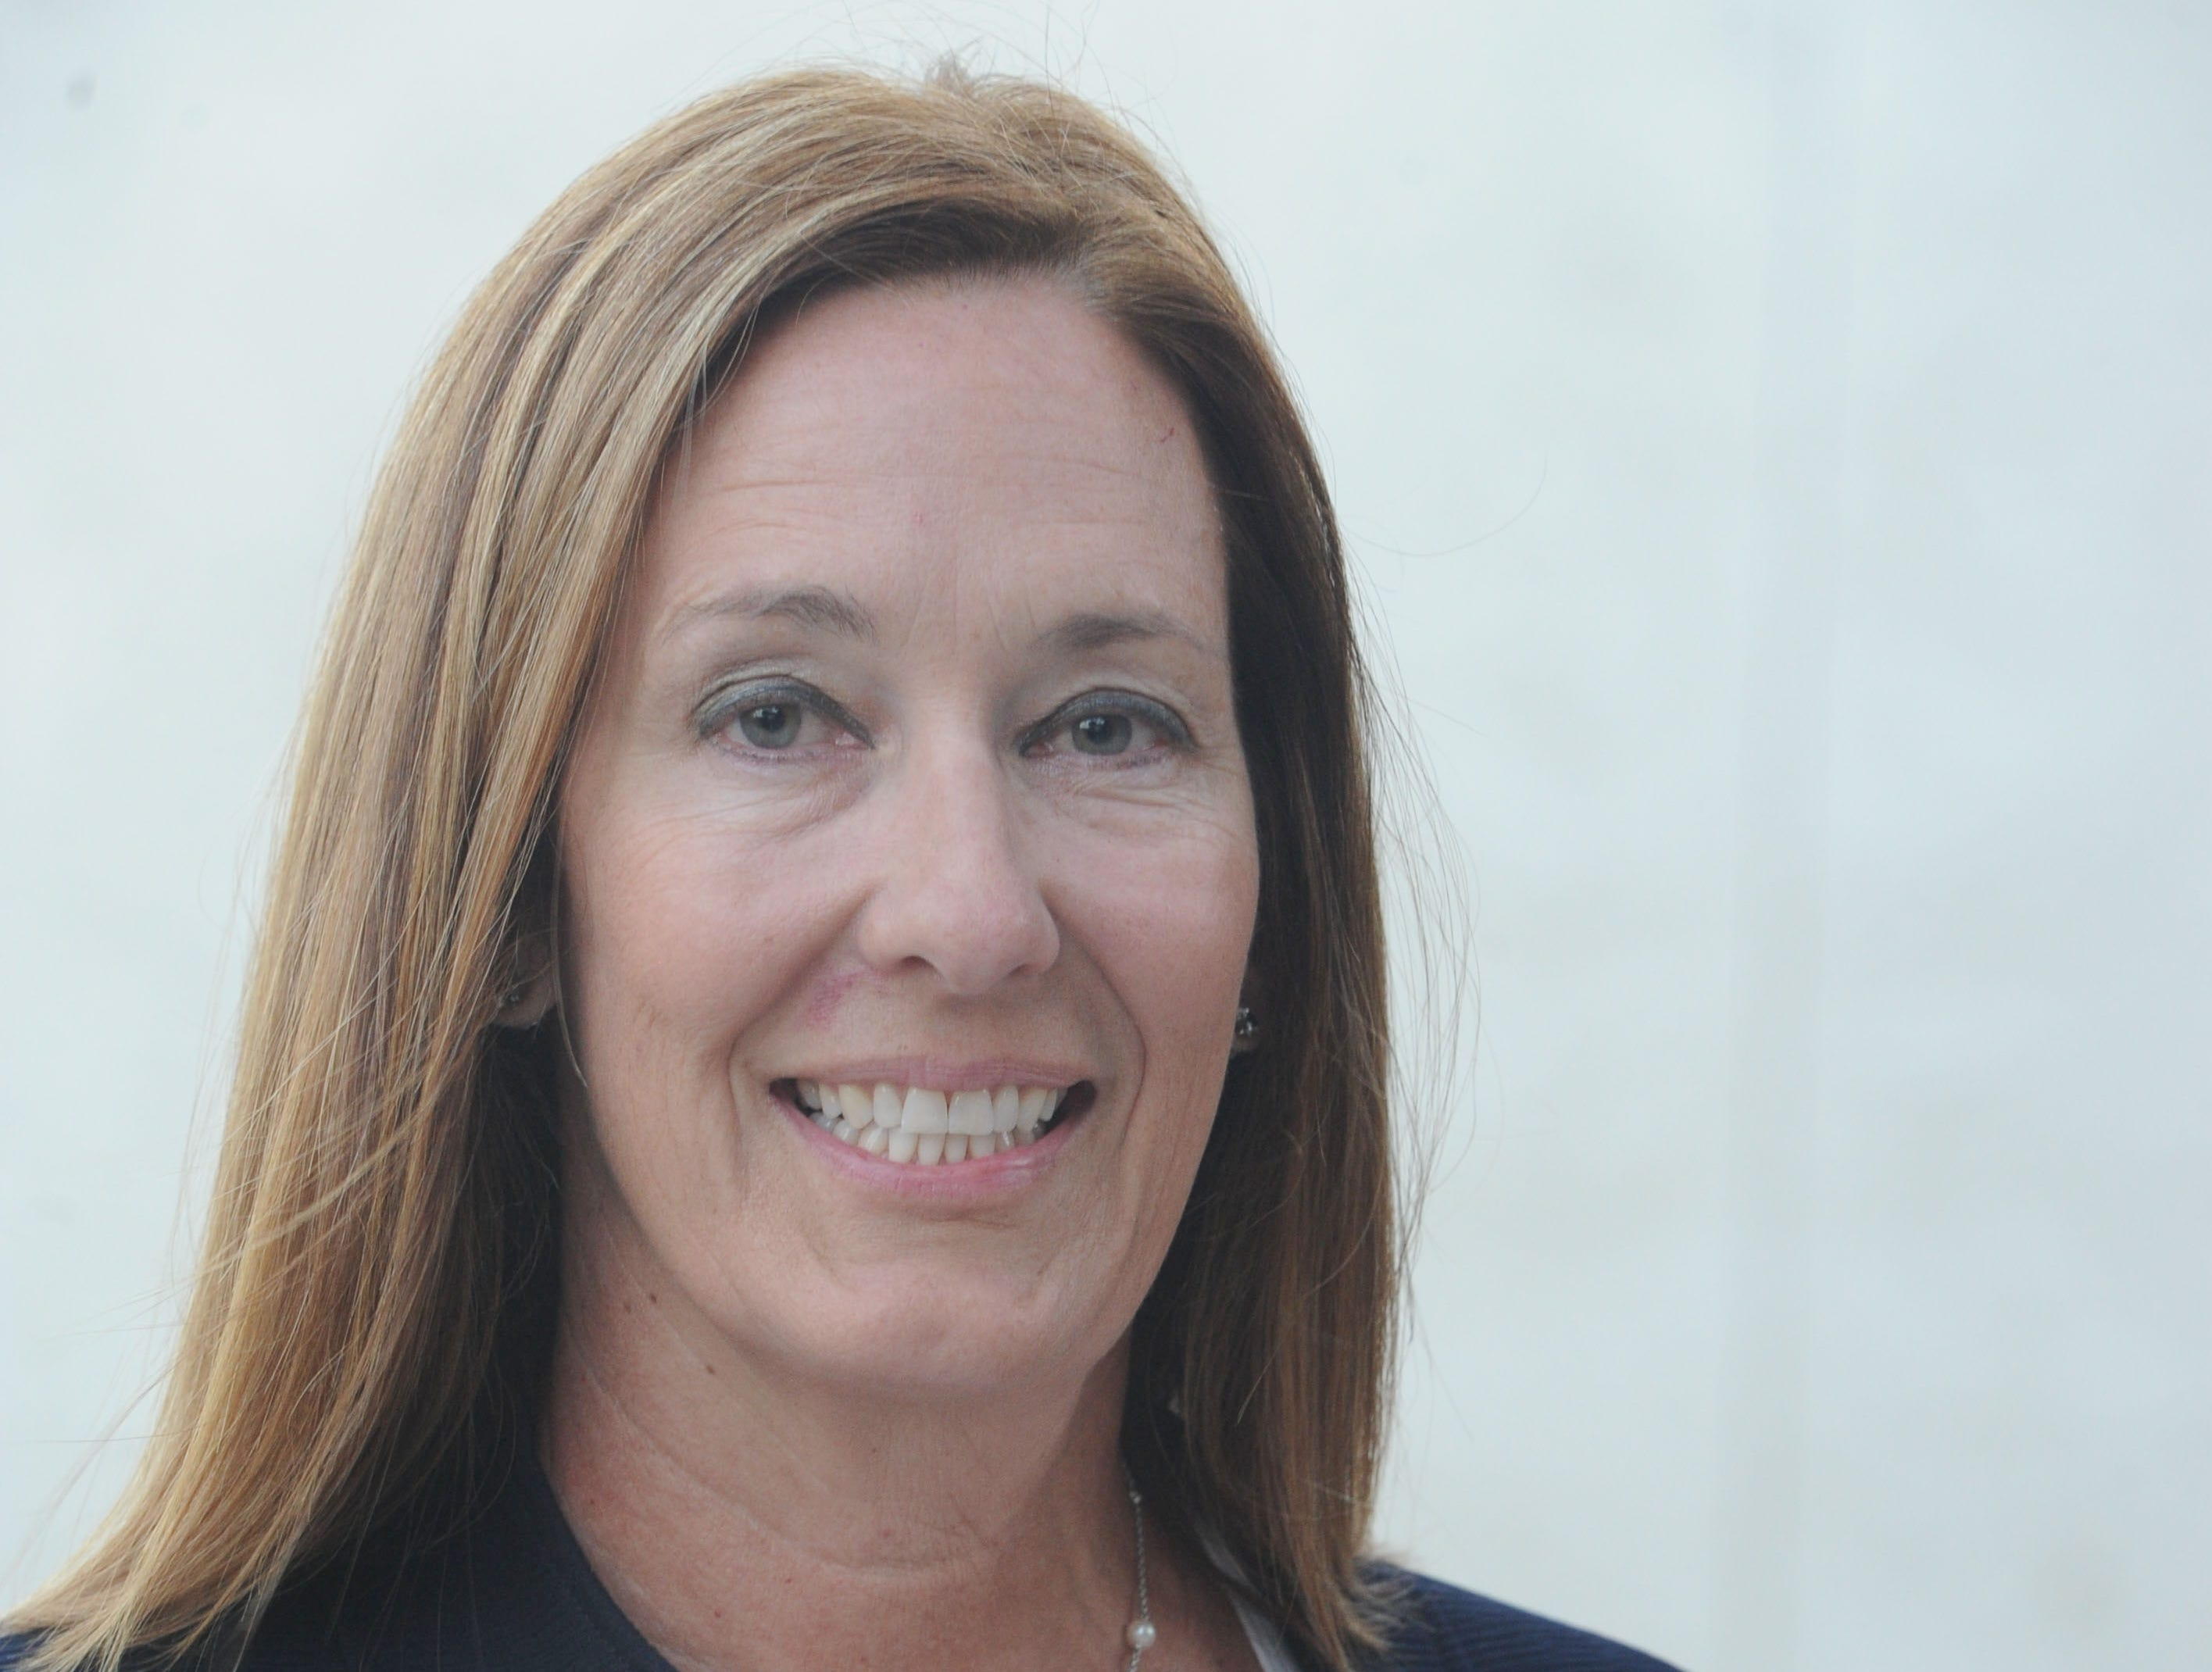 Jacqui Irwin, D-Thousand Oaks, is the incumbent representing the 44th  Assembly District.